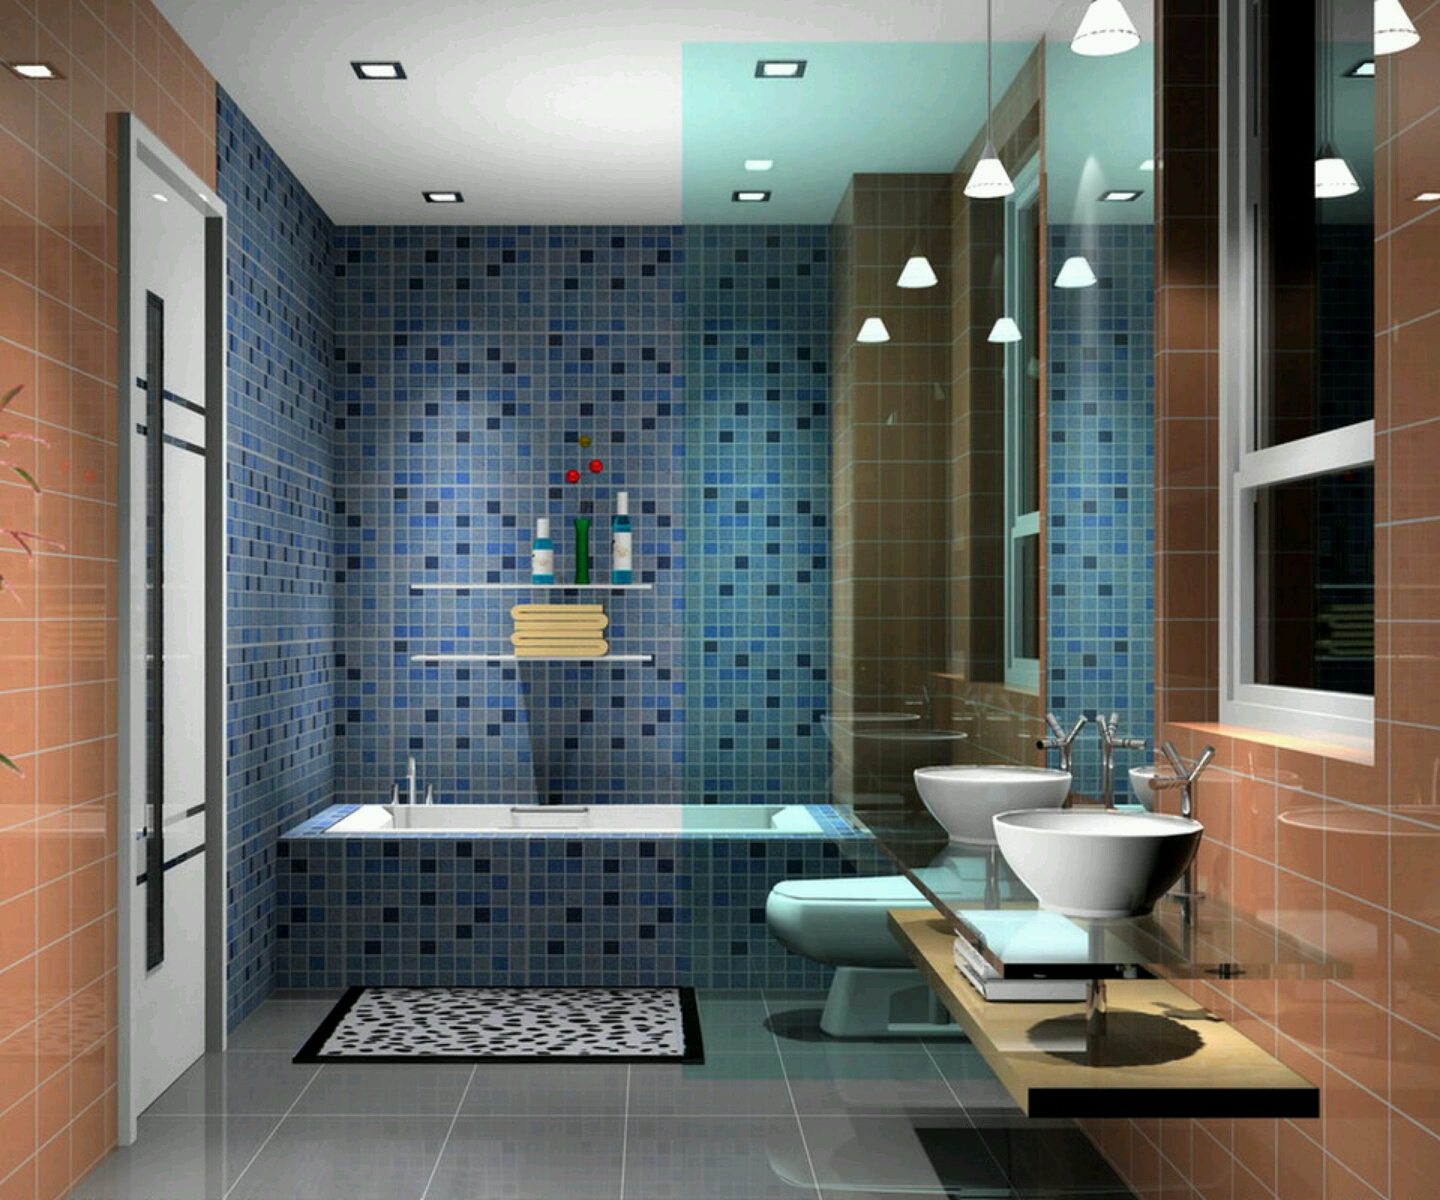 Modern bathrooms best designs ideas - Modern bathroom decorating ideas ...